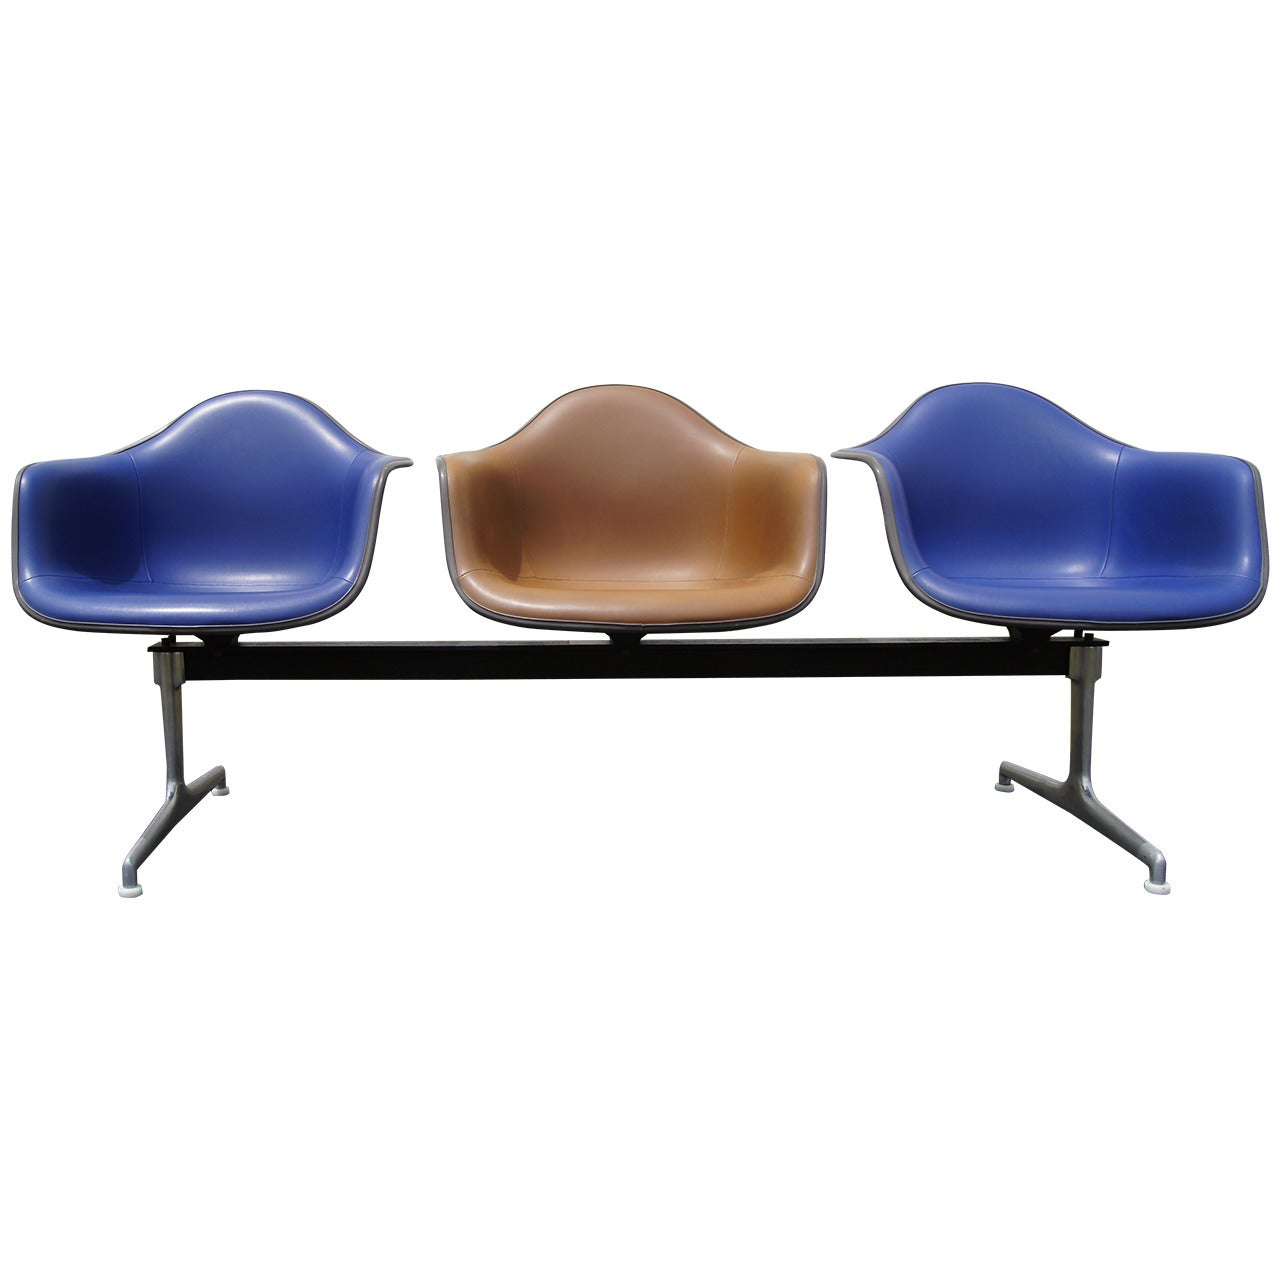 Tandem Three-Shell Seating by Charles and Ray Eames for Herman Miller